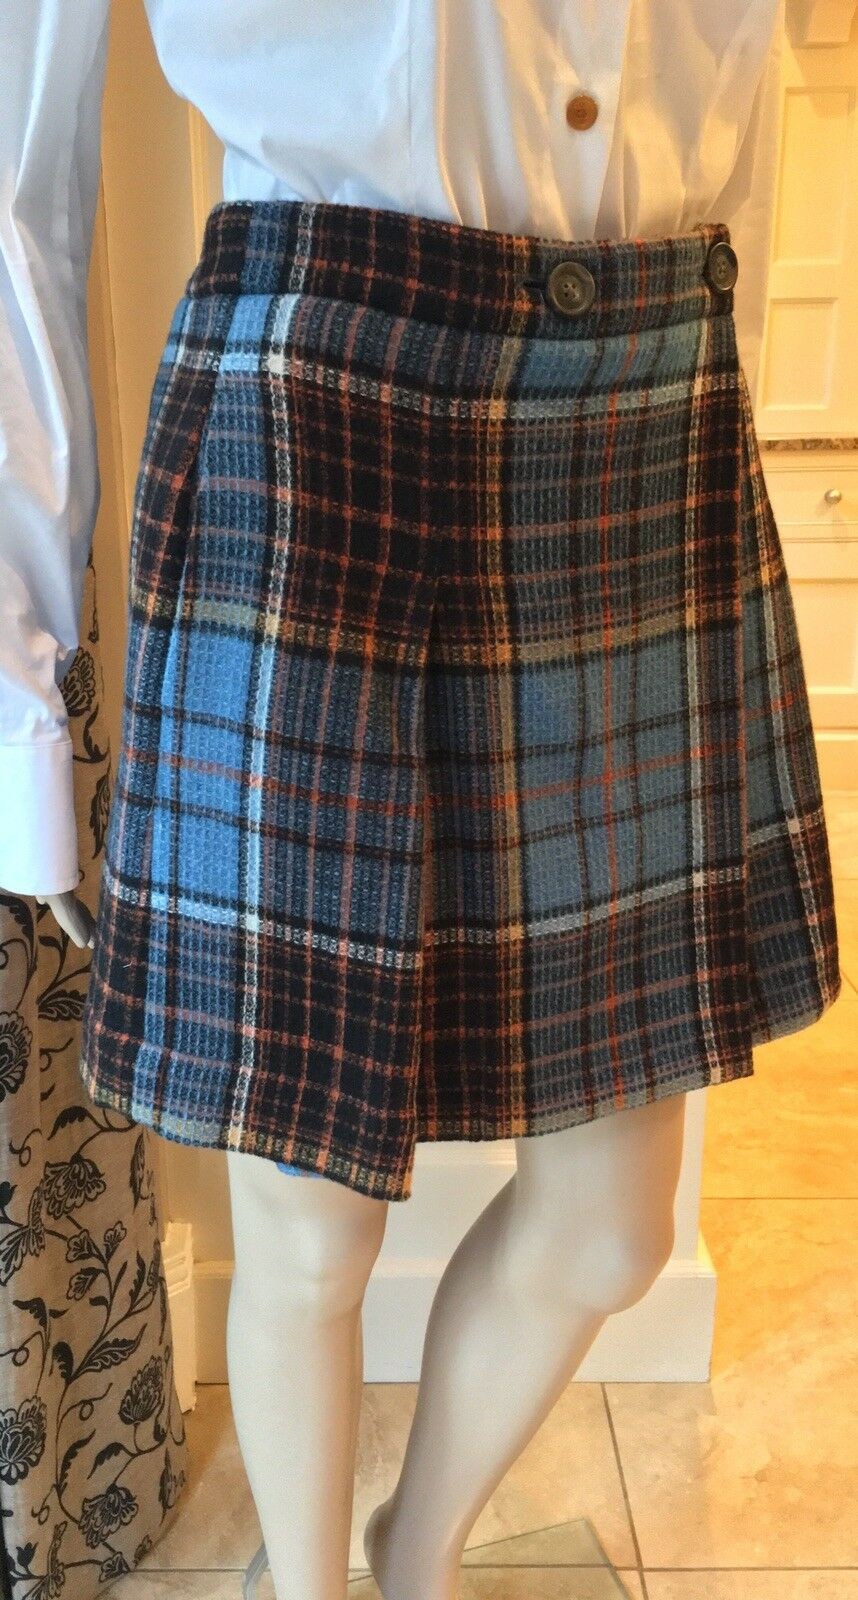 Vivienne Westwood  Anglomania Anglomania Anglomania  KALLAS Kilt Gonna in Tartan Check 42 UK10 1d5837